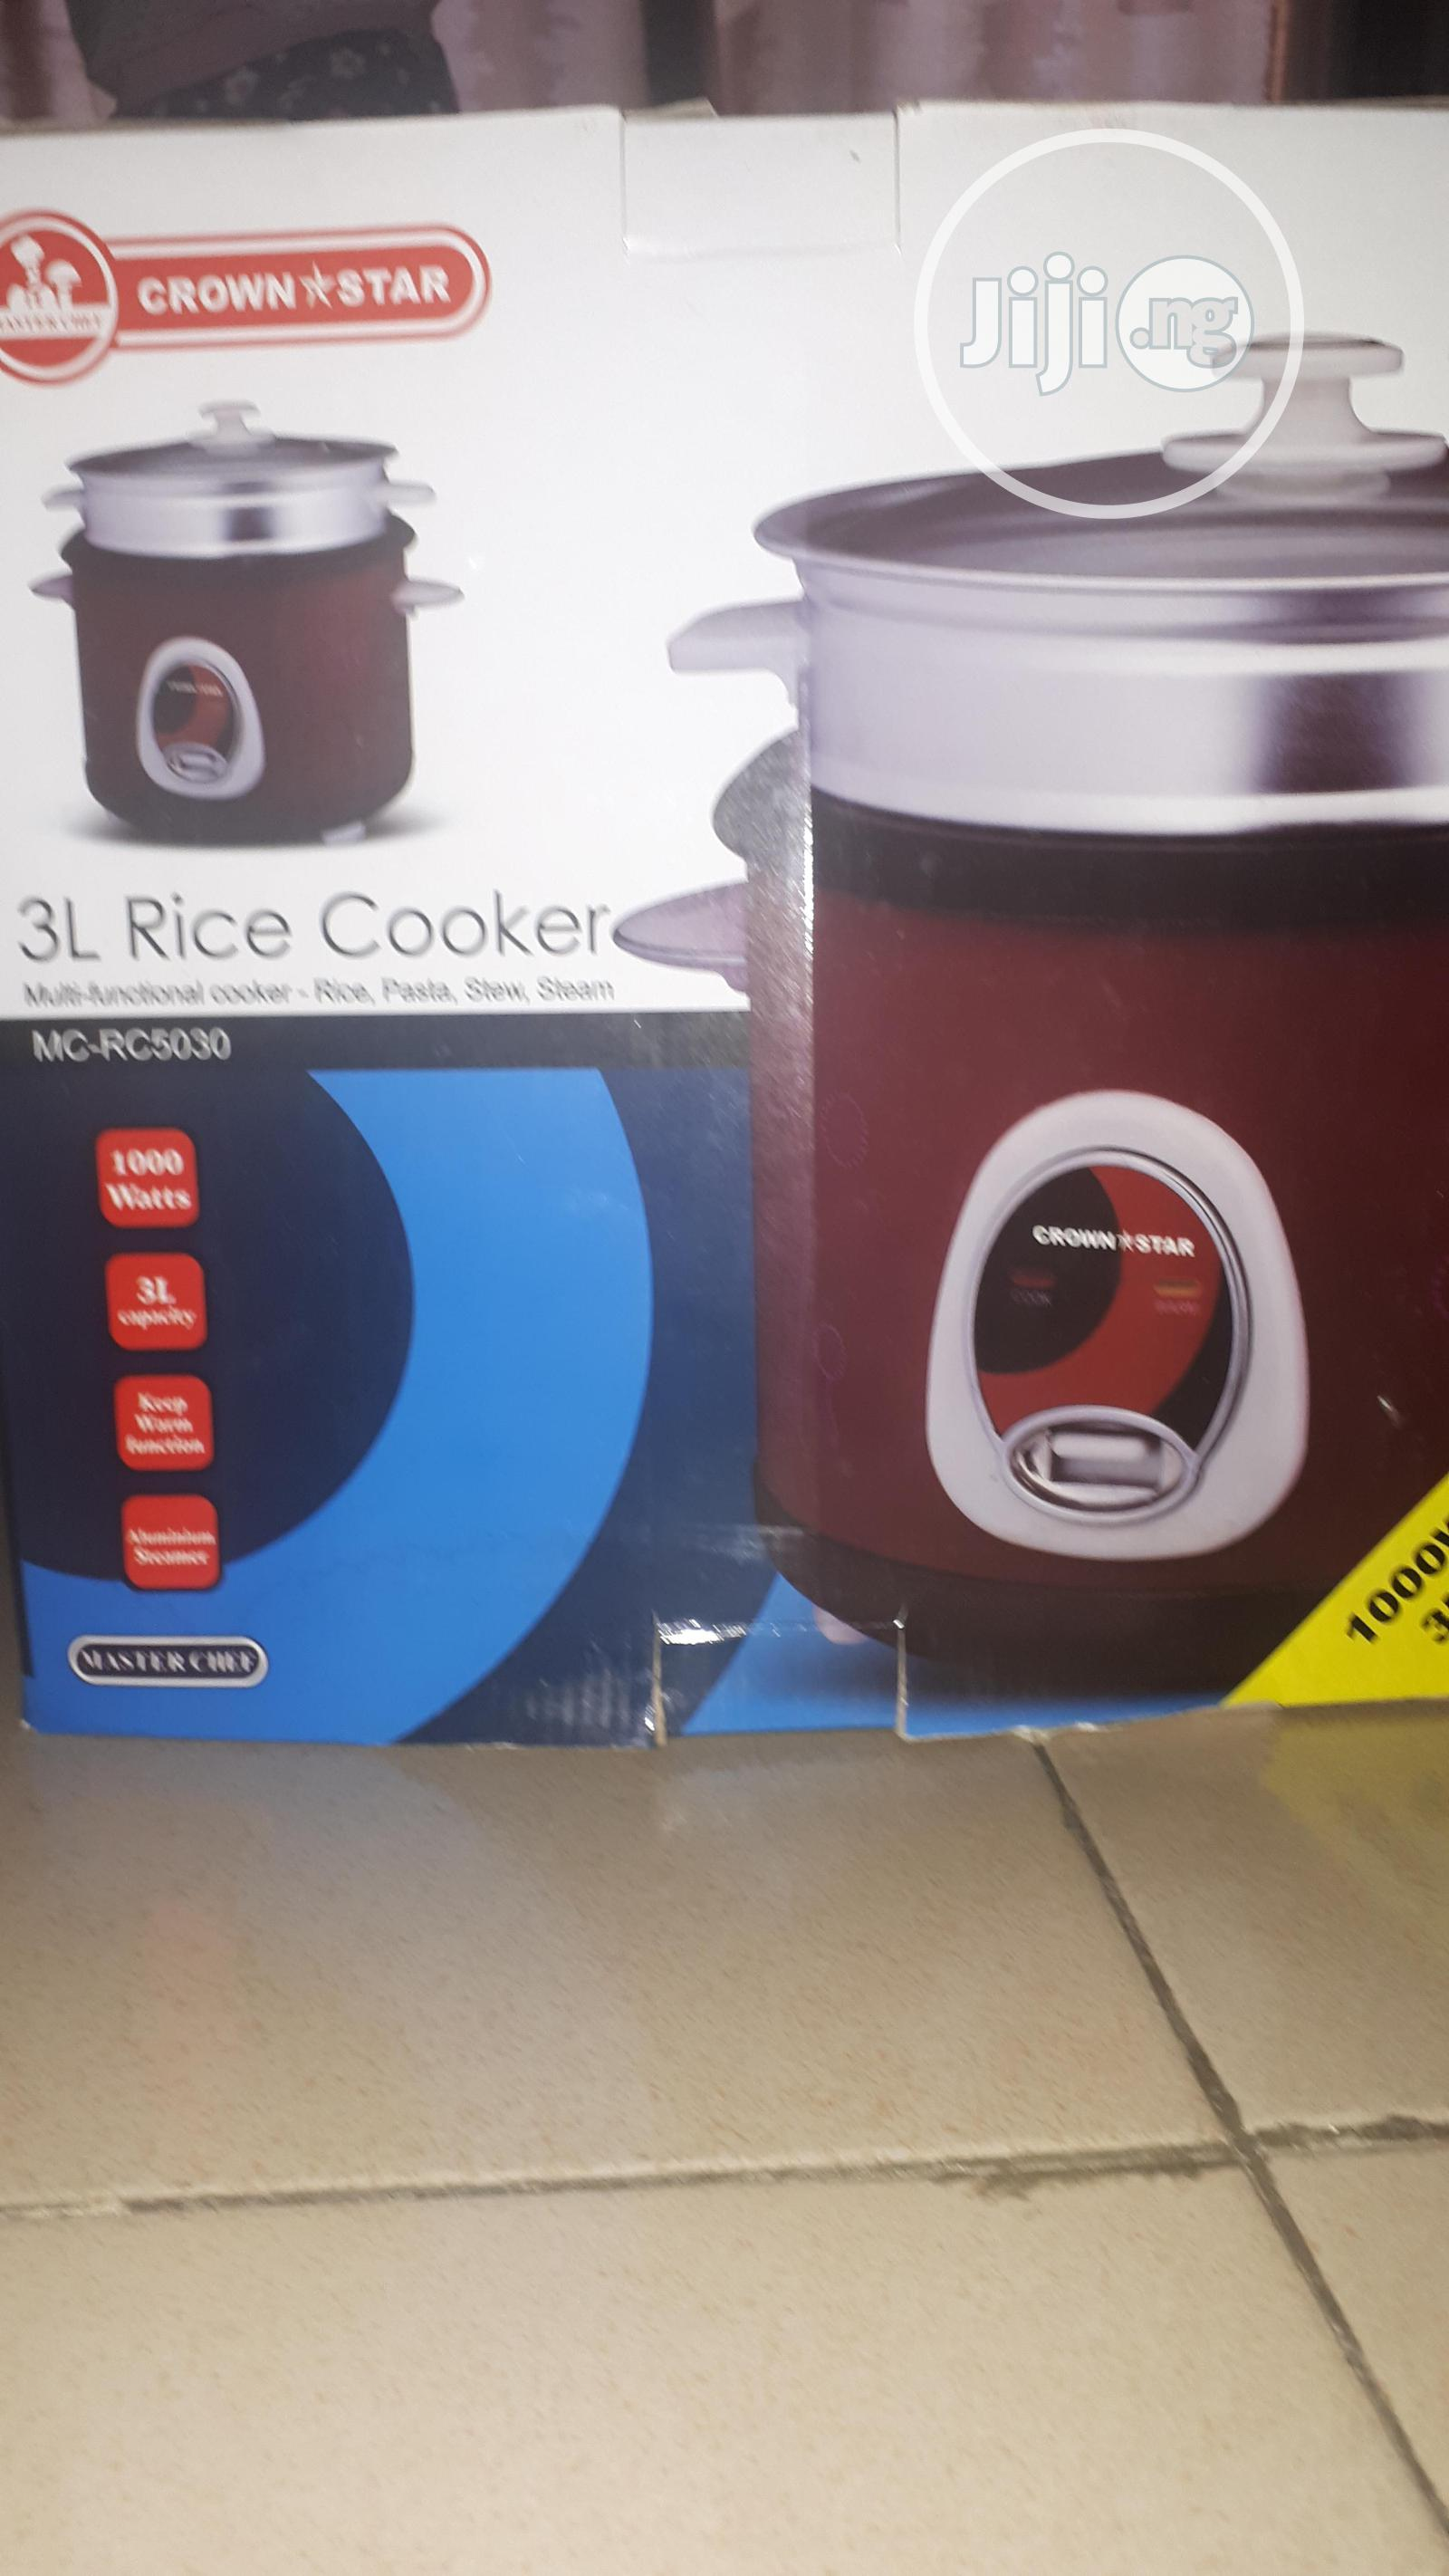 Crown Star Rice Cooker